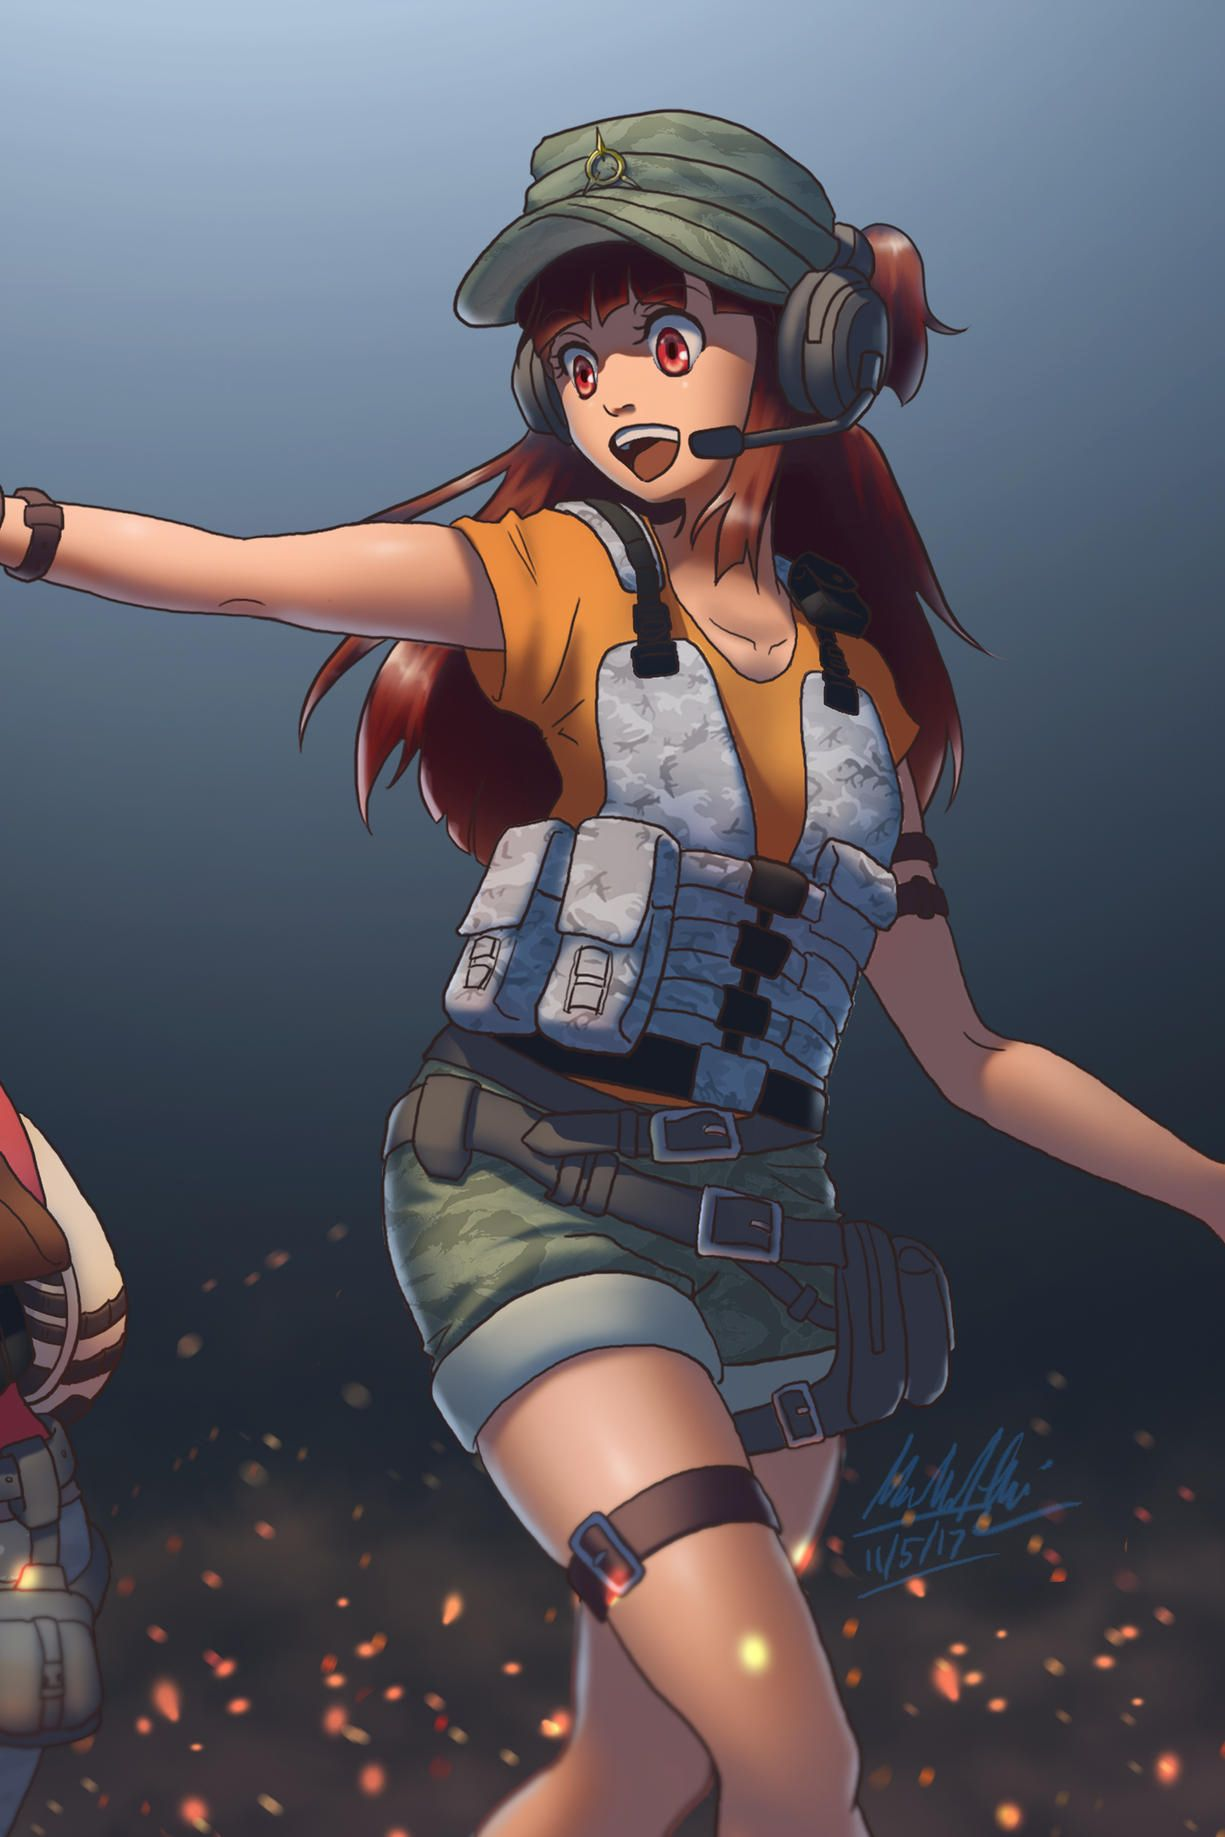 pubg game anime crossover art girl players mobile